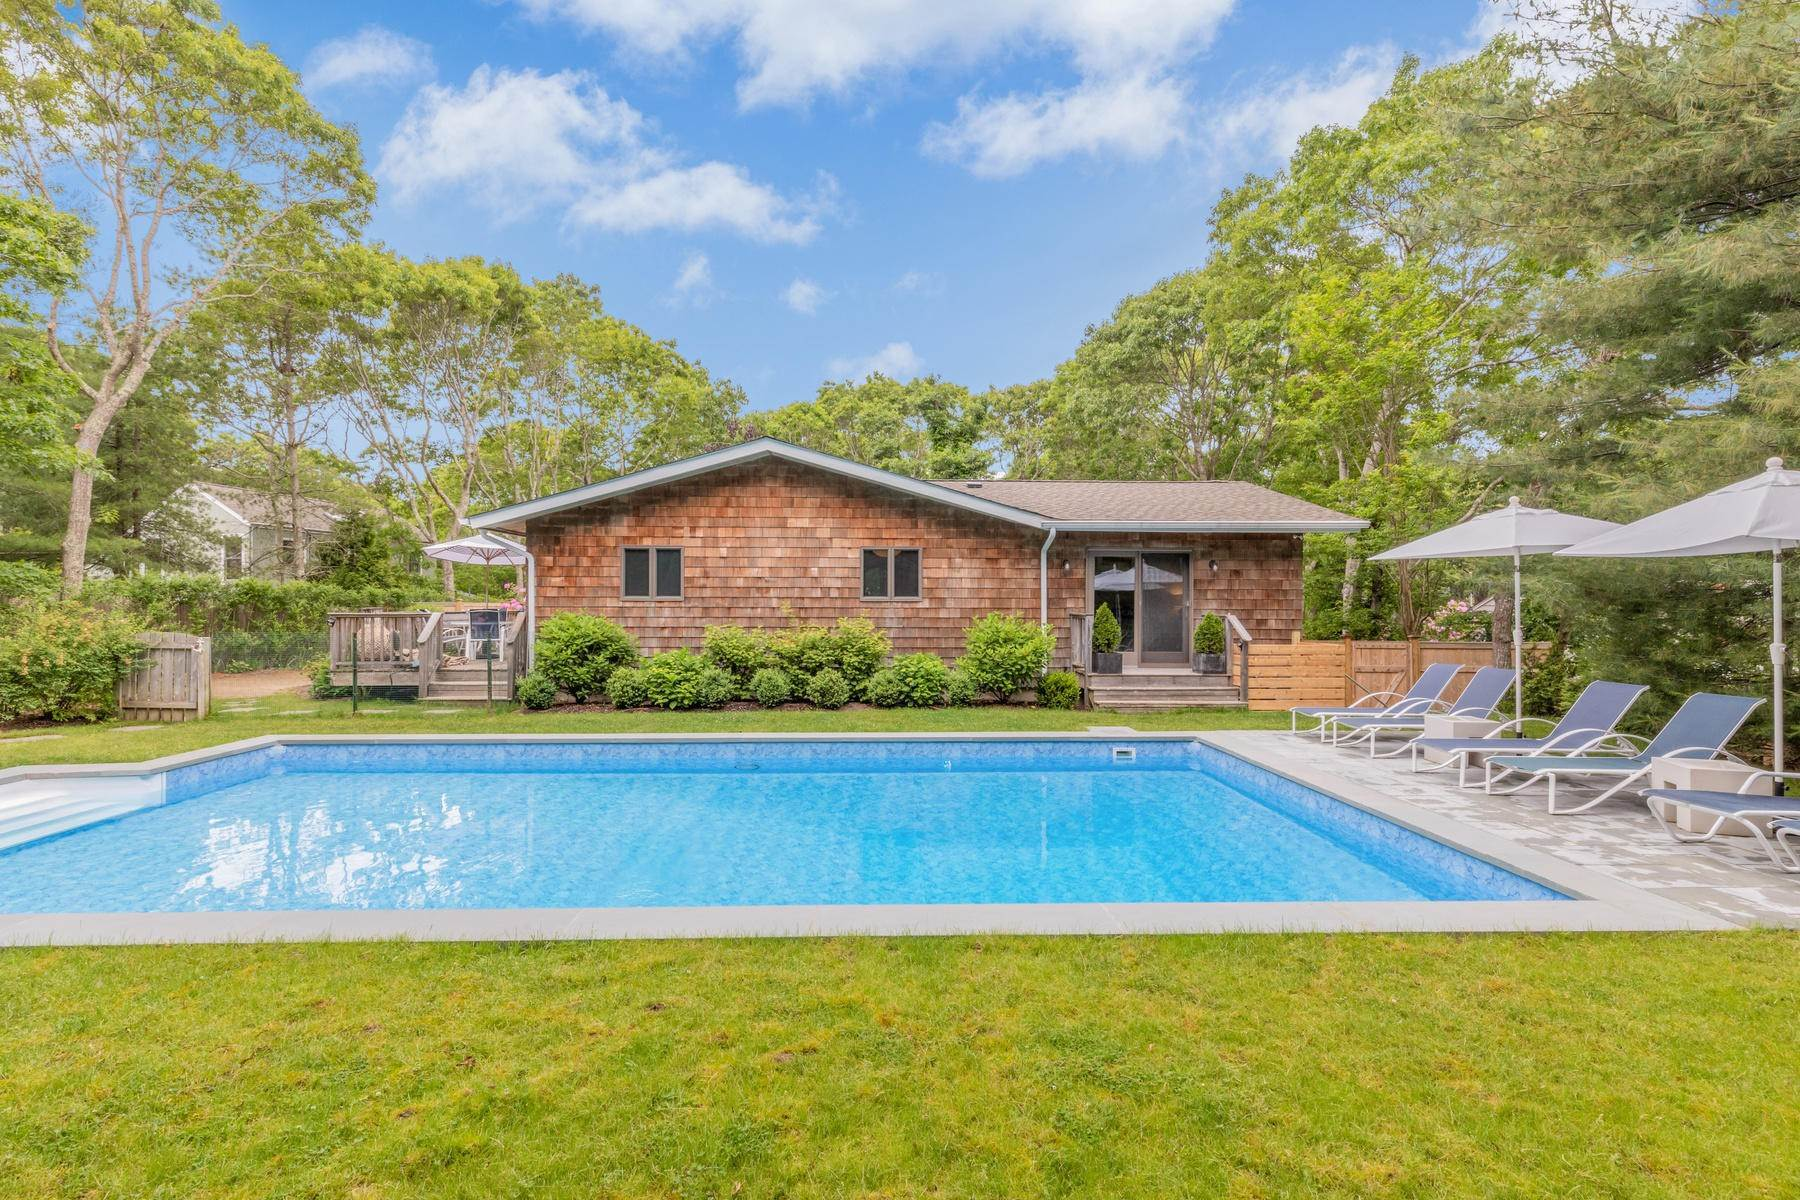 Single Family Home at East Hampton House On Elevated Site In The Woods 27 Cosdrew Lane, East Hampton, NY 11937